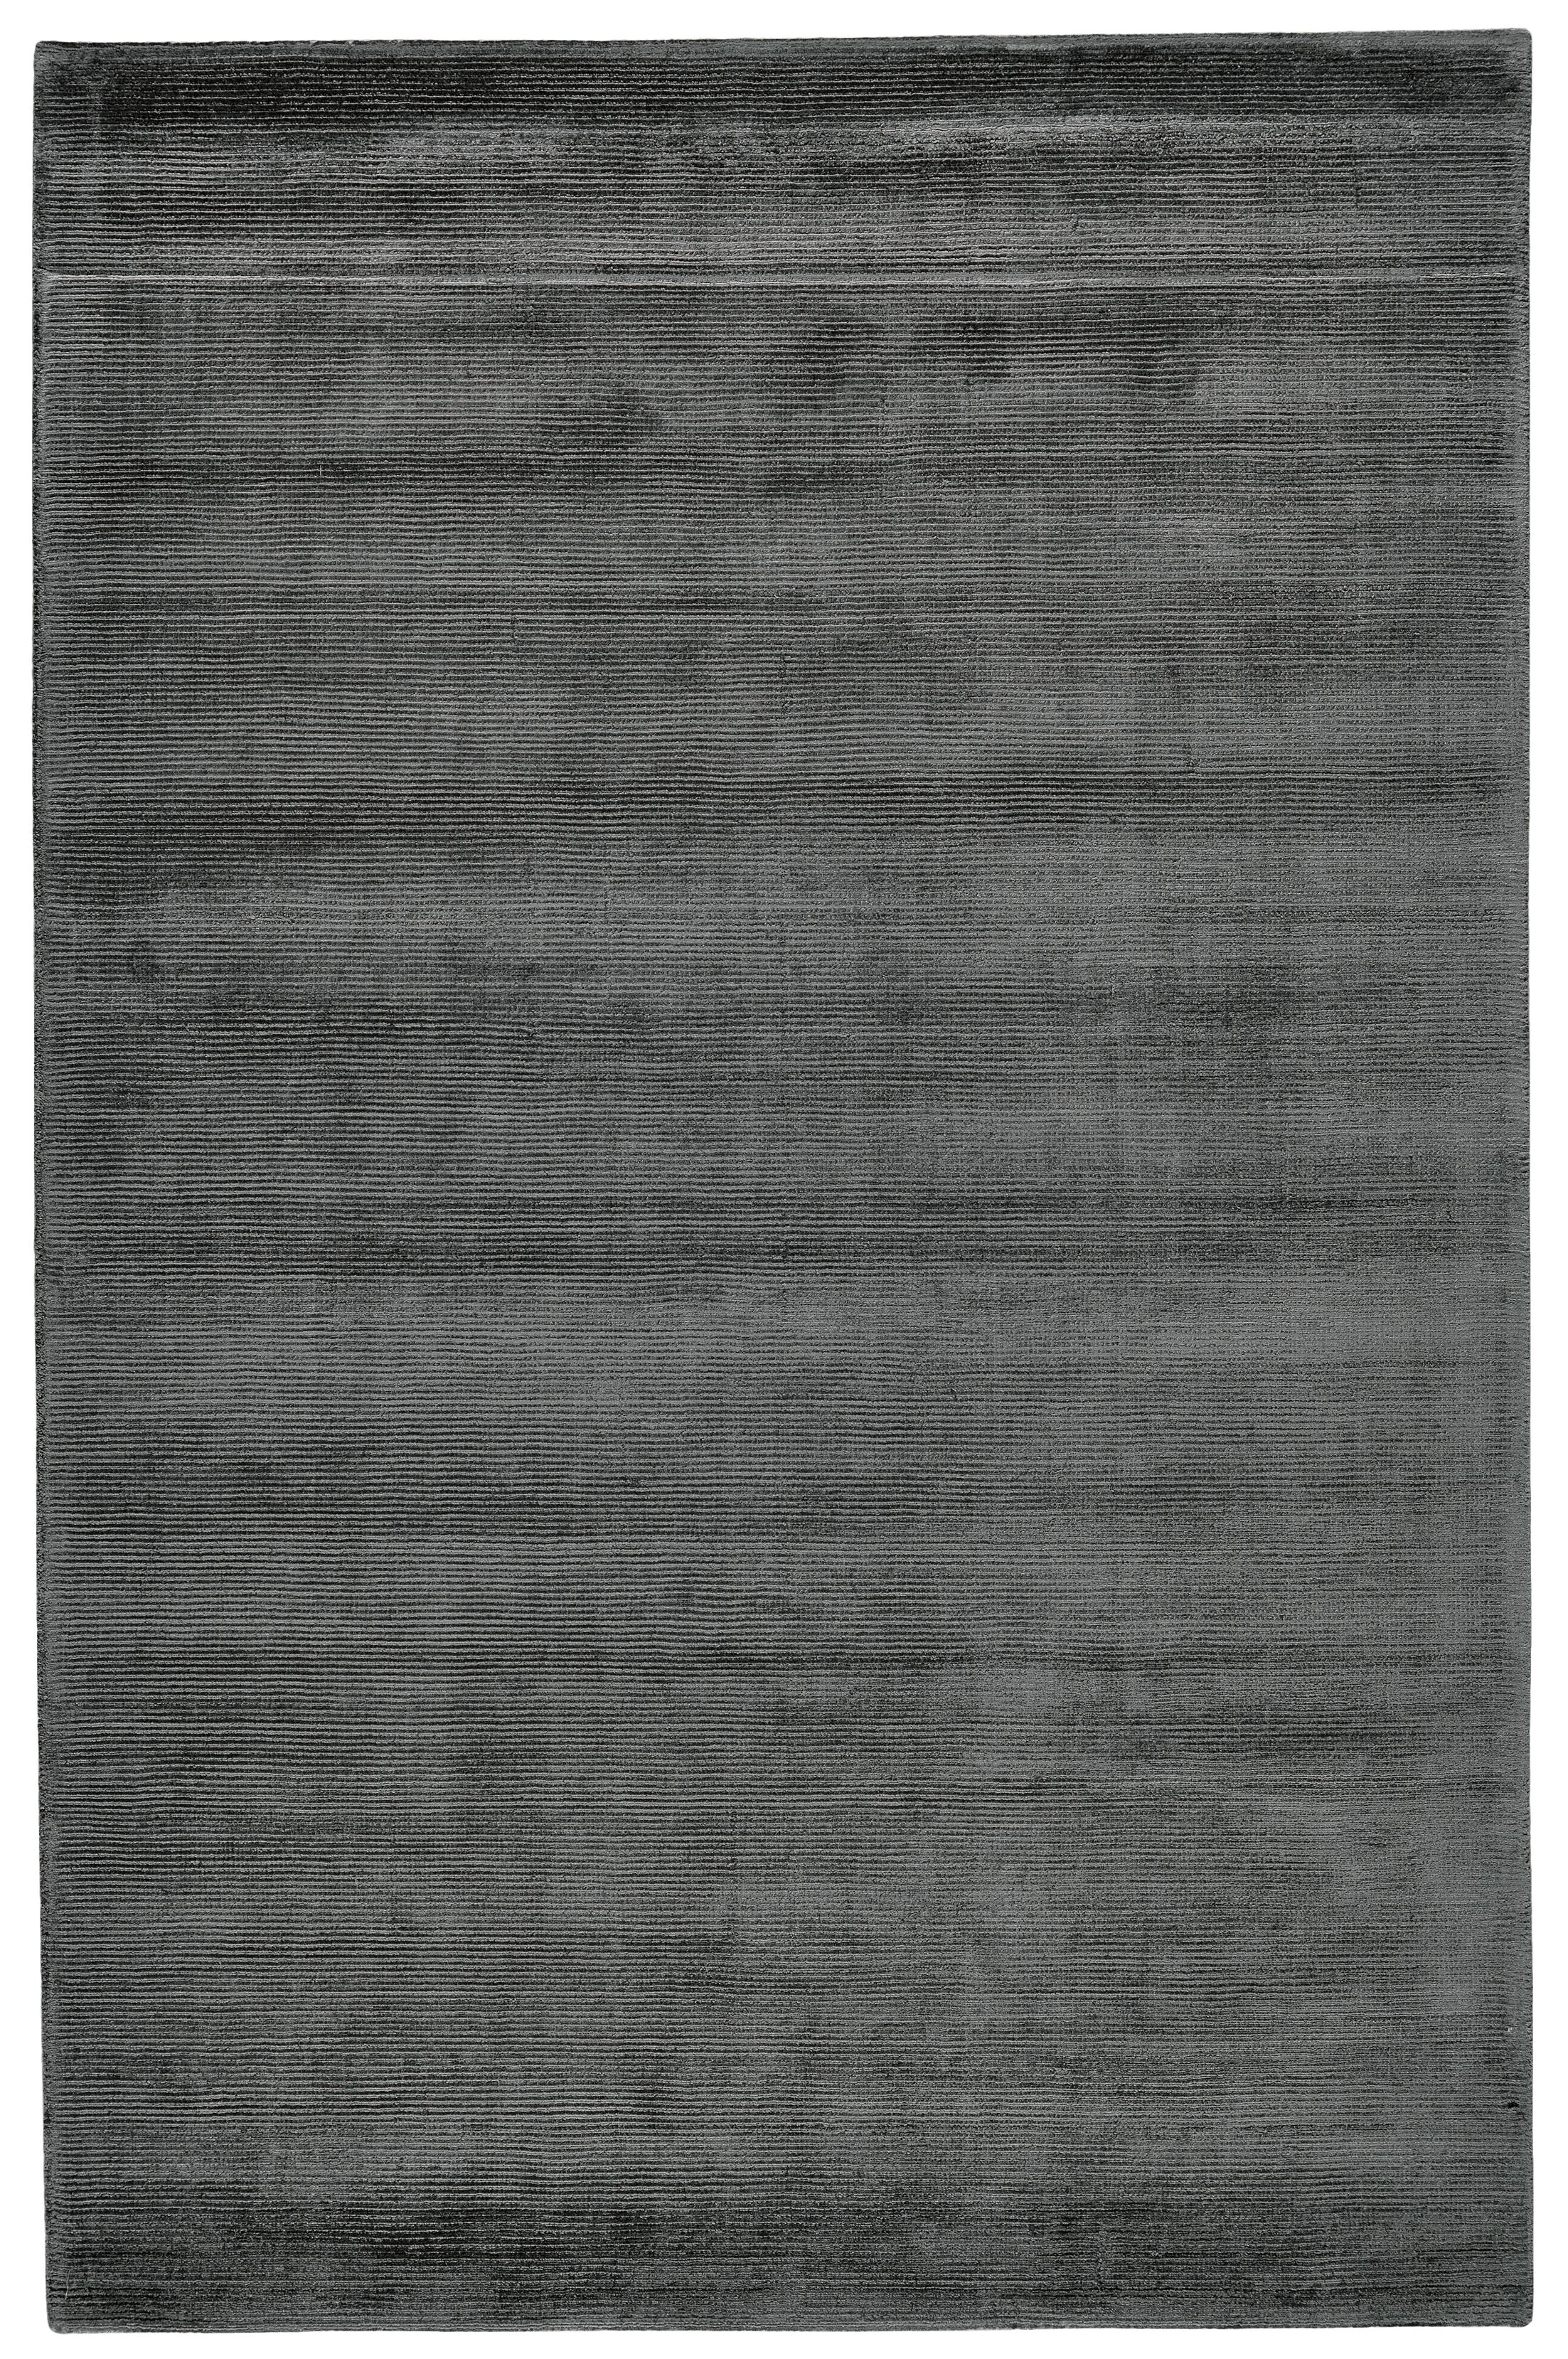 Riaria Hand-Woven Charcoal Area Rug Rug Size: Rectangle 2' x 3'